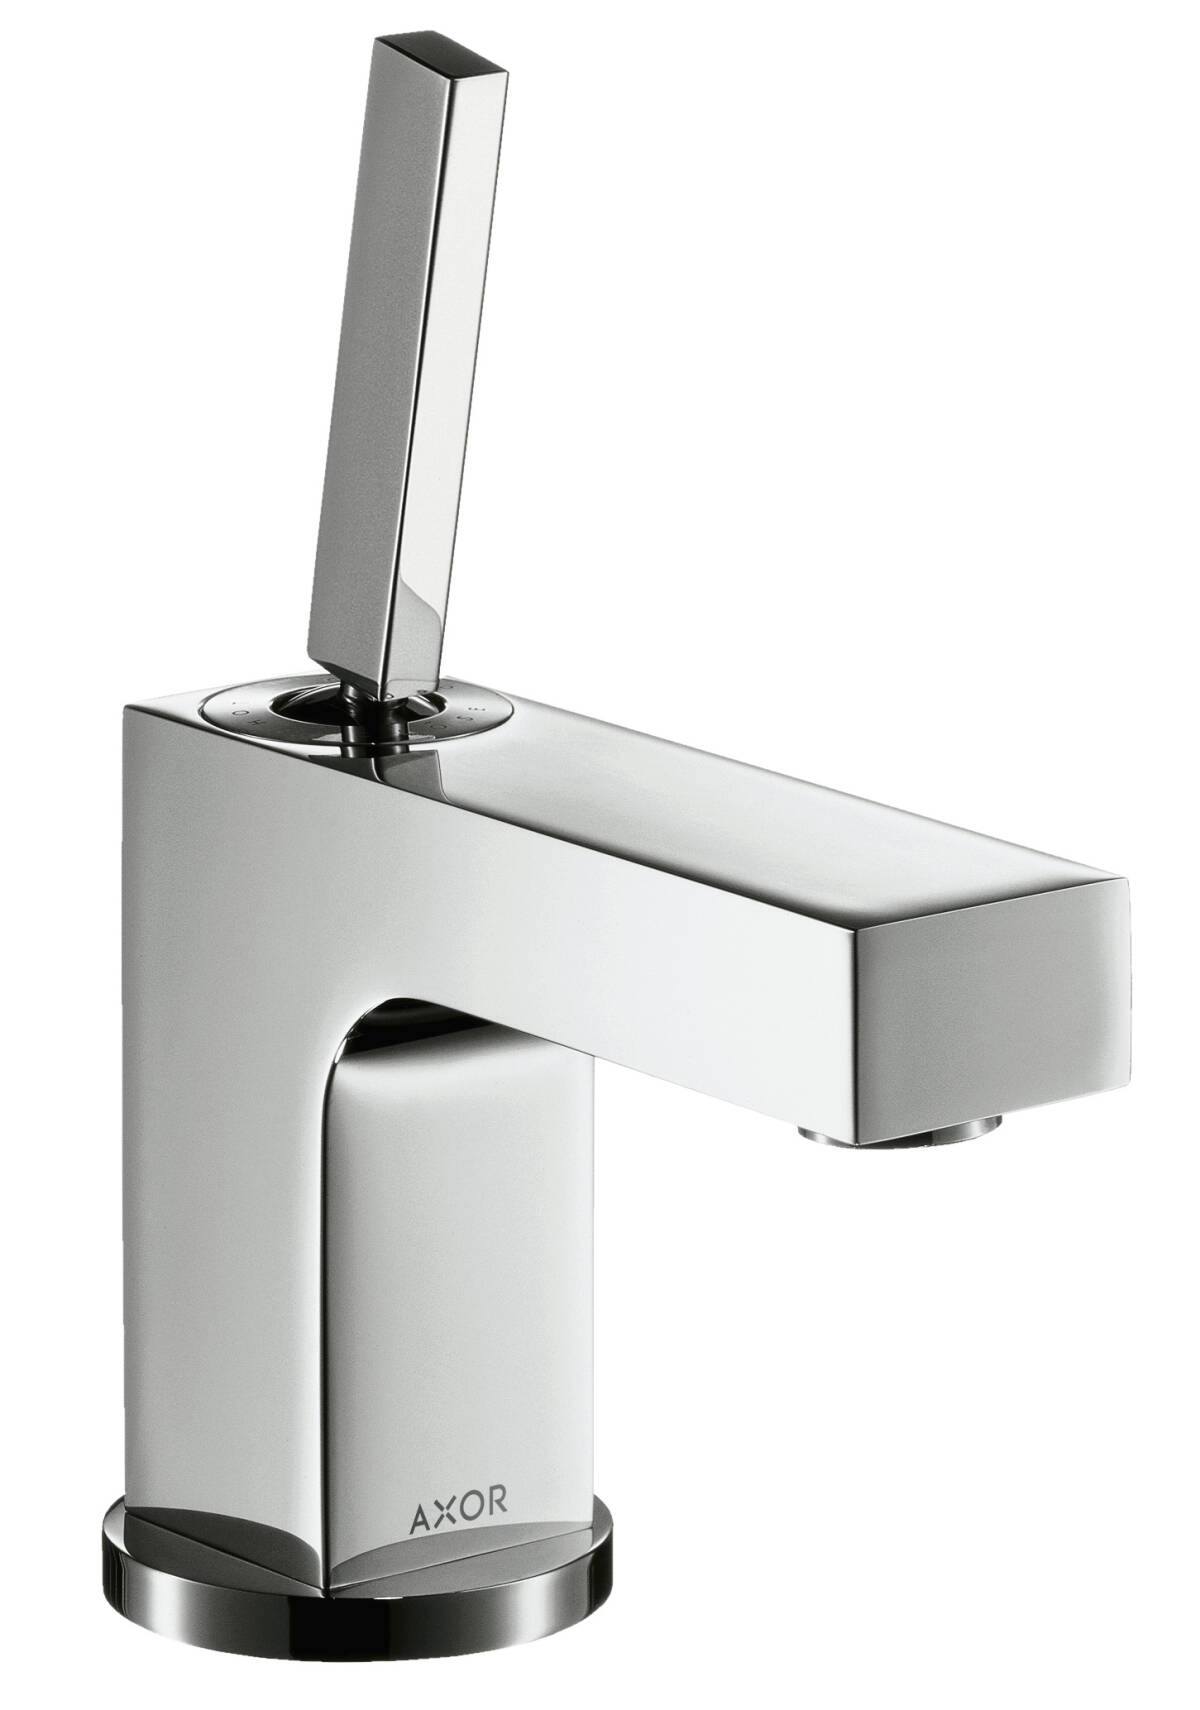 Single lever basin mixer 80 with pin handle for hand washbasins with pop-up waste set, Polished Red Gold, 39015300